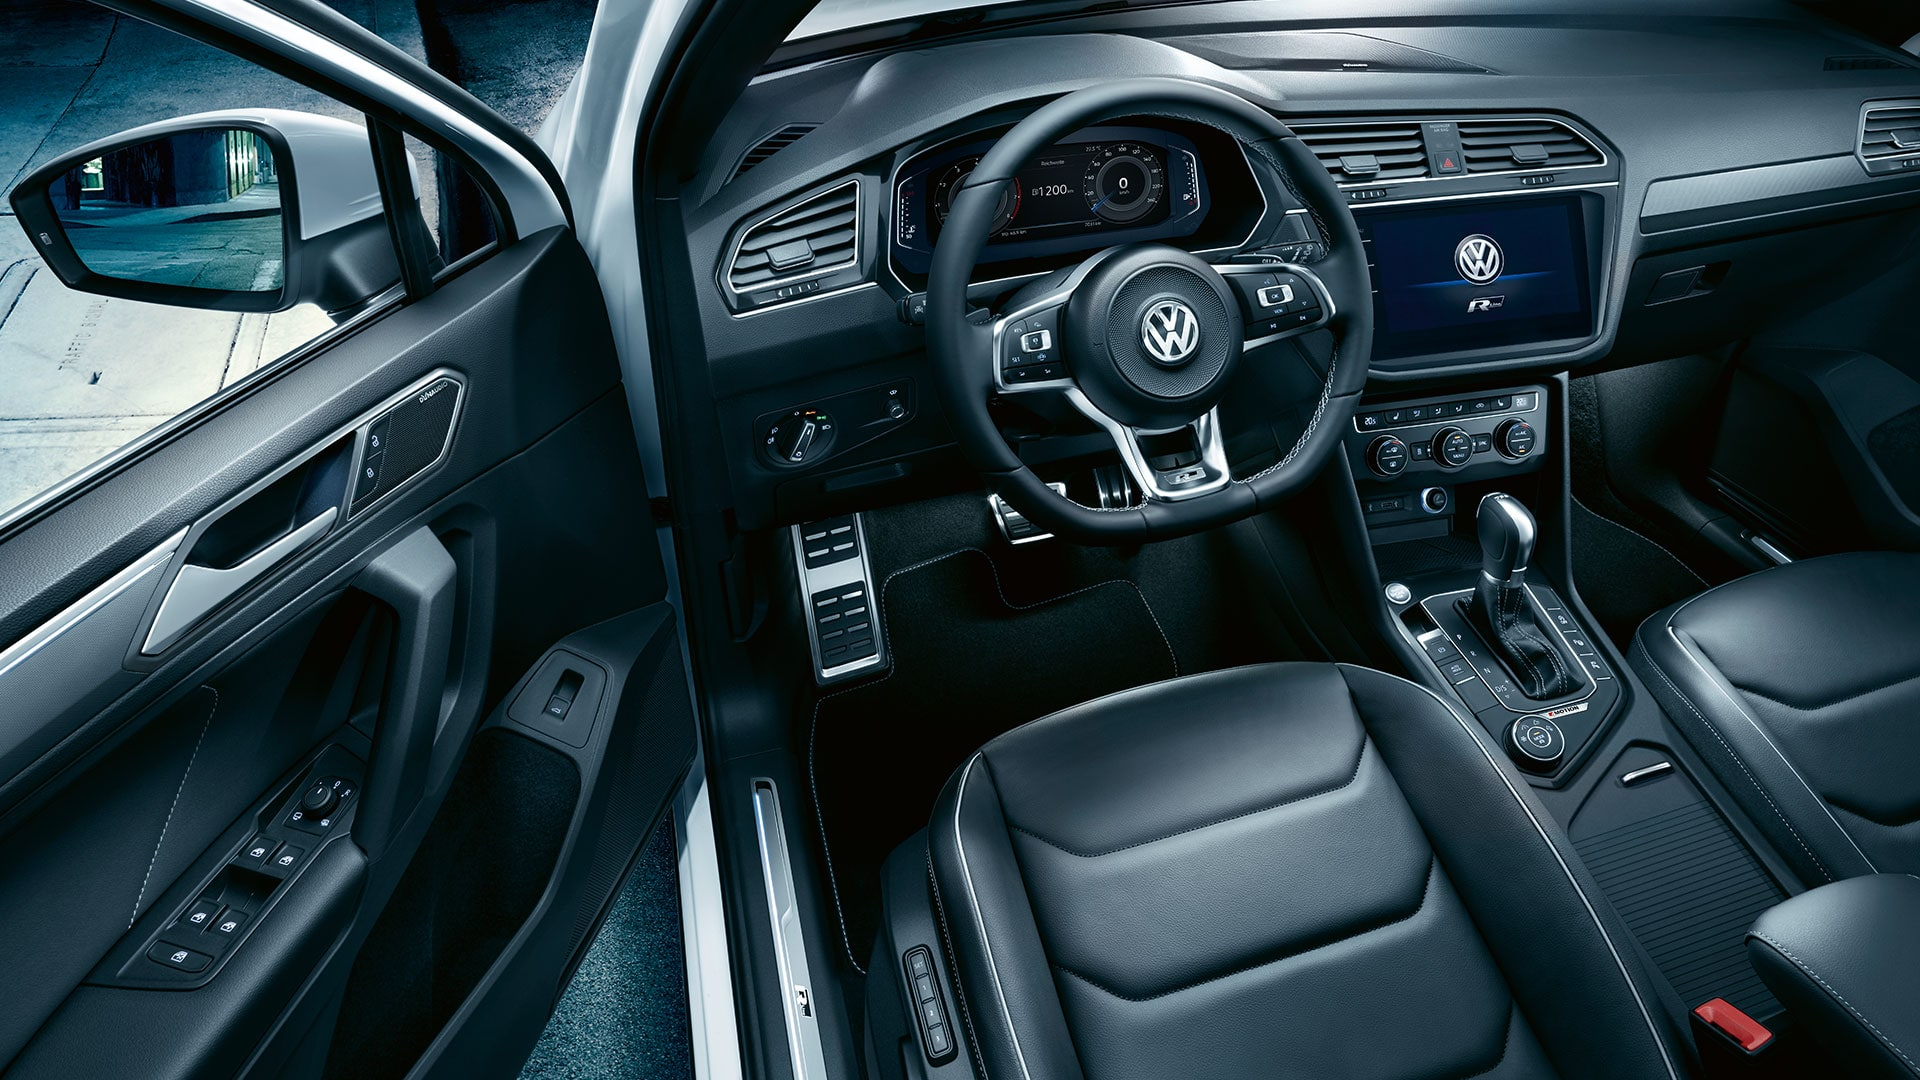 Tiguan interior dash